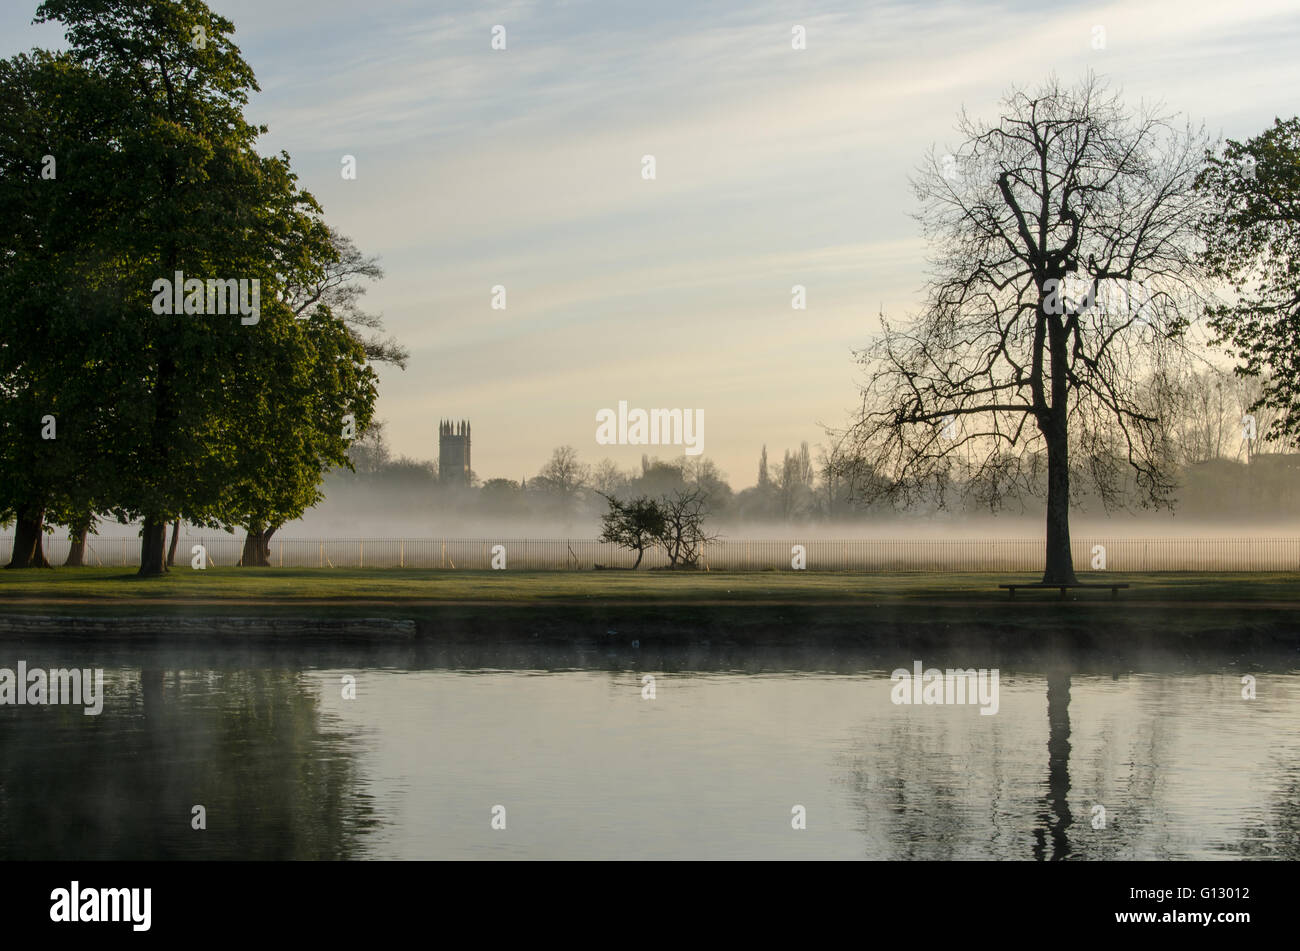 May Day sunrise at River Thames, Oxford, England - Stock Image